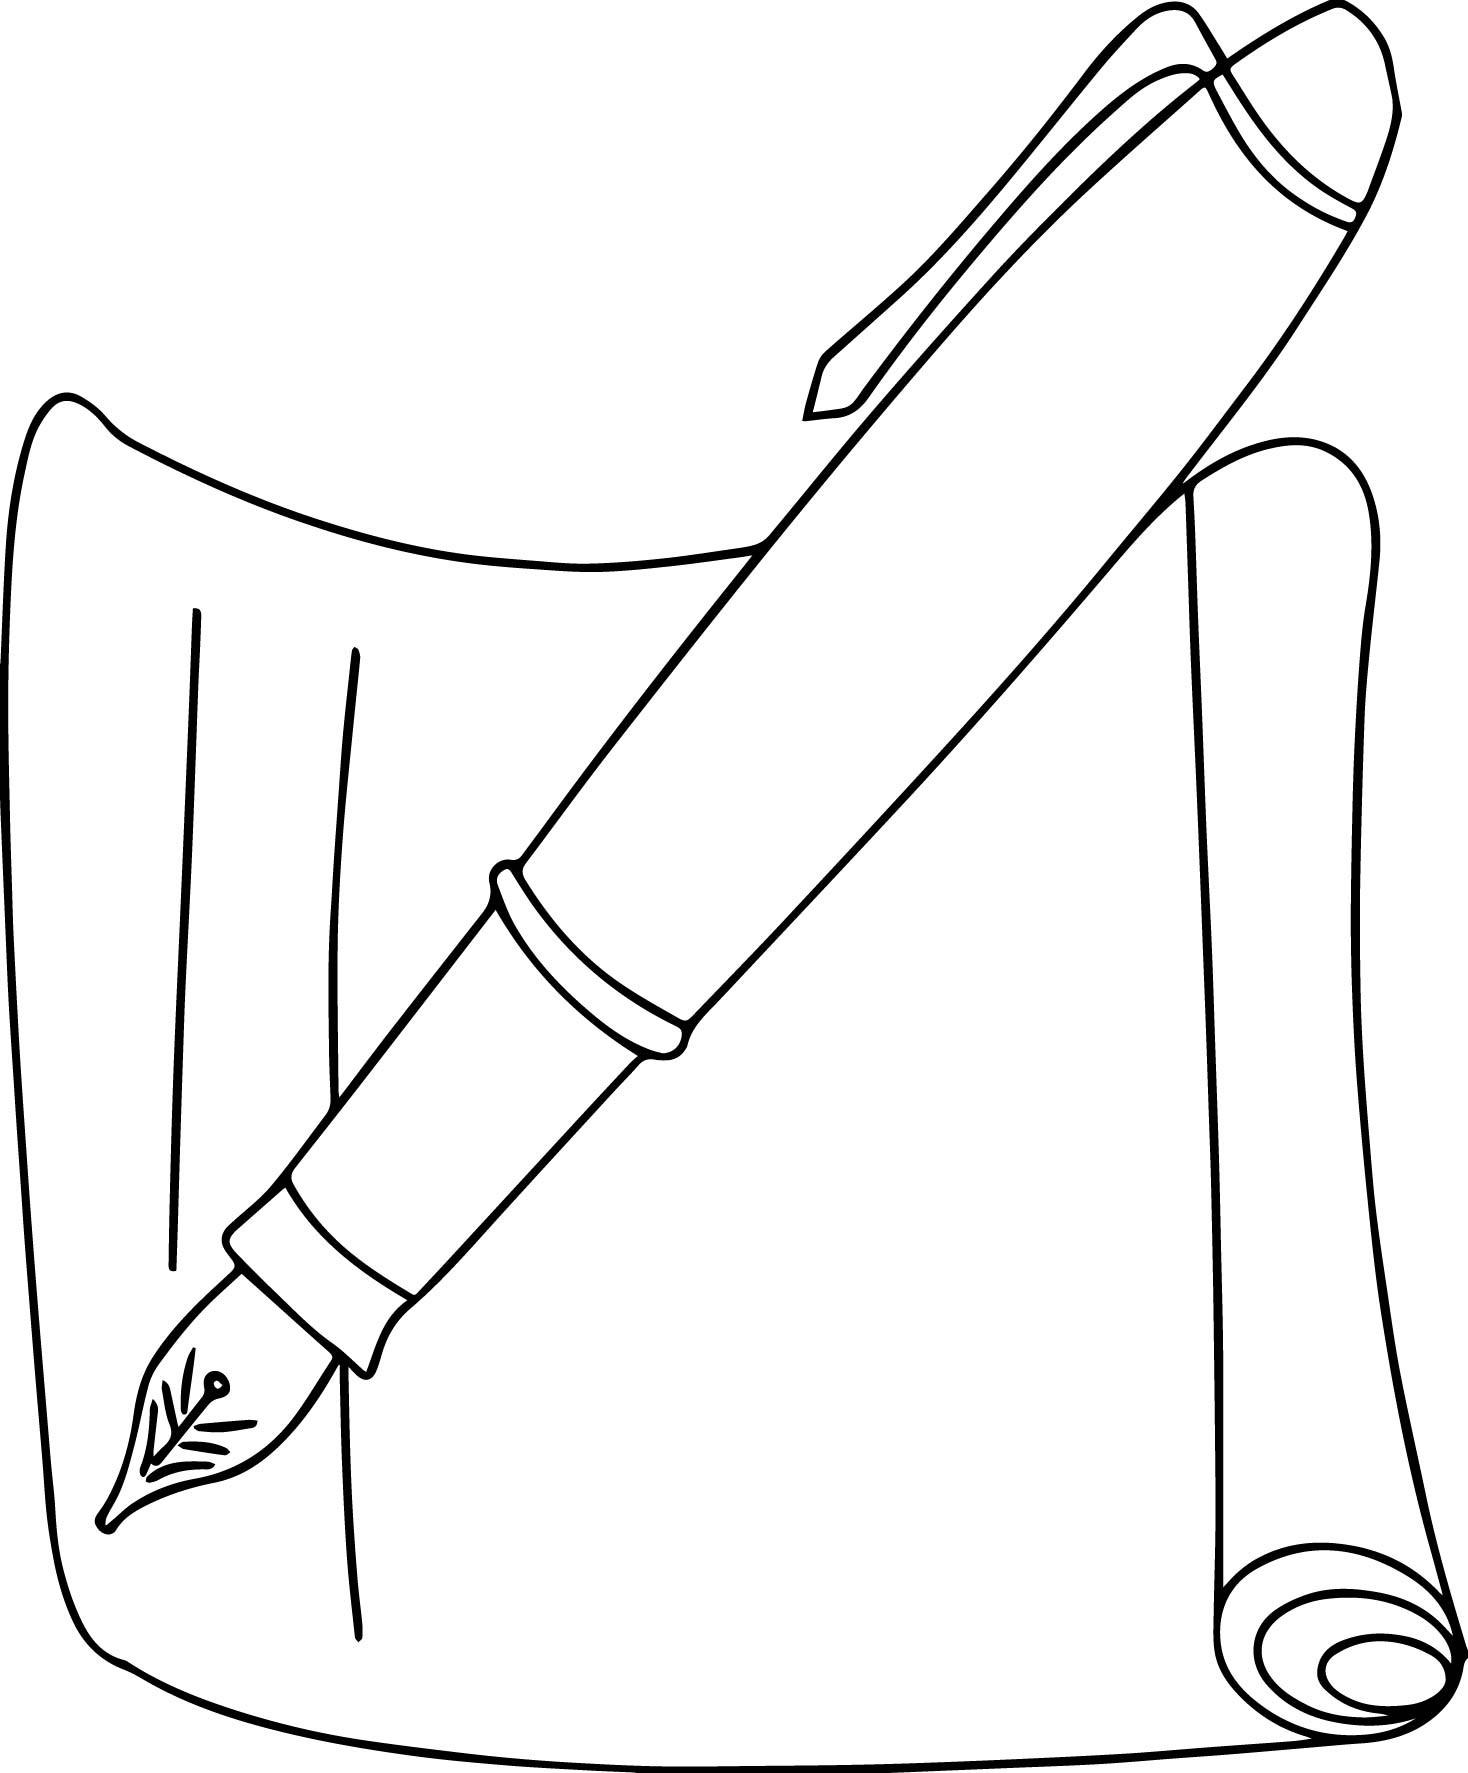 School Pen Coloring Page Awesome top 89 Pen Coloring Pages Free Download Of Top 89 Pen Coloring Pages Free Coloring Page Gallery